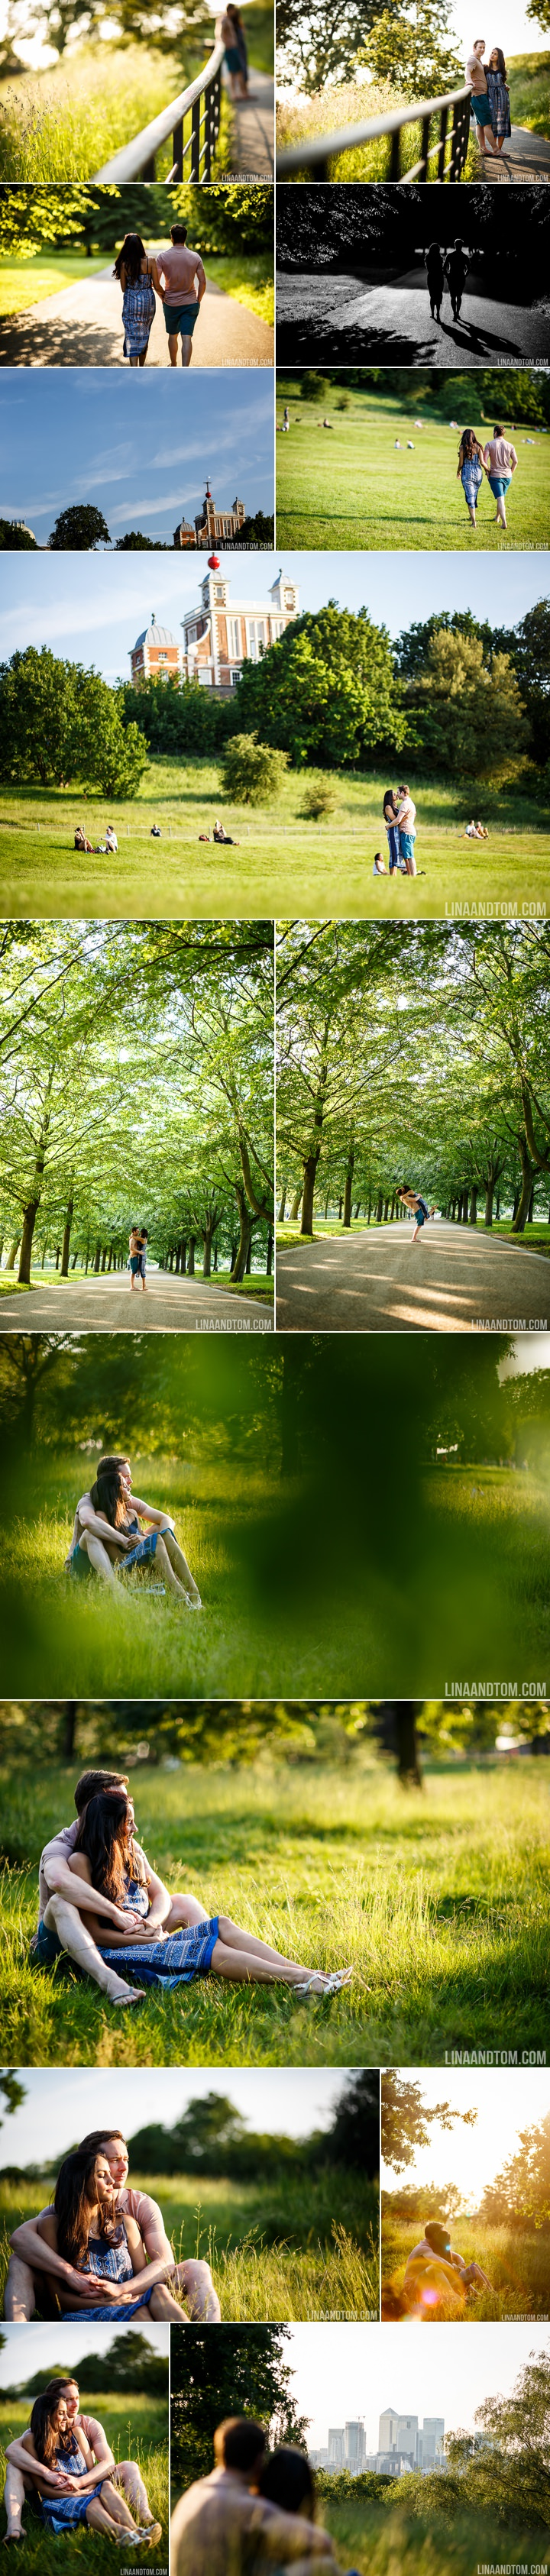 GreenwichPark Pre Wedding Photos